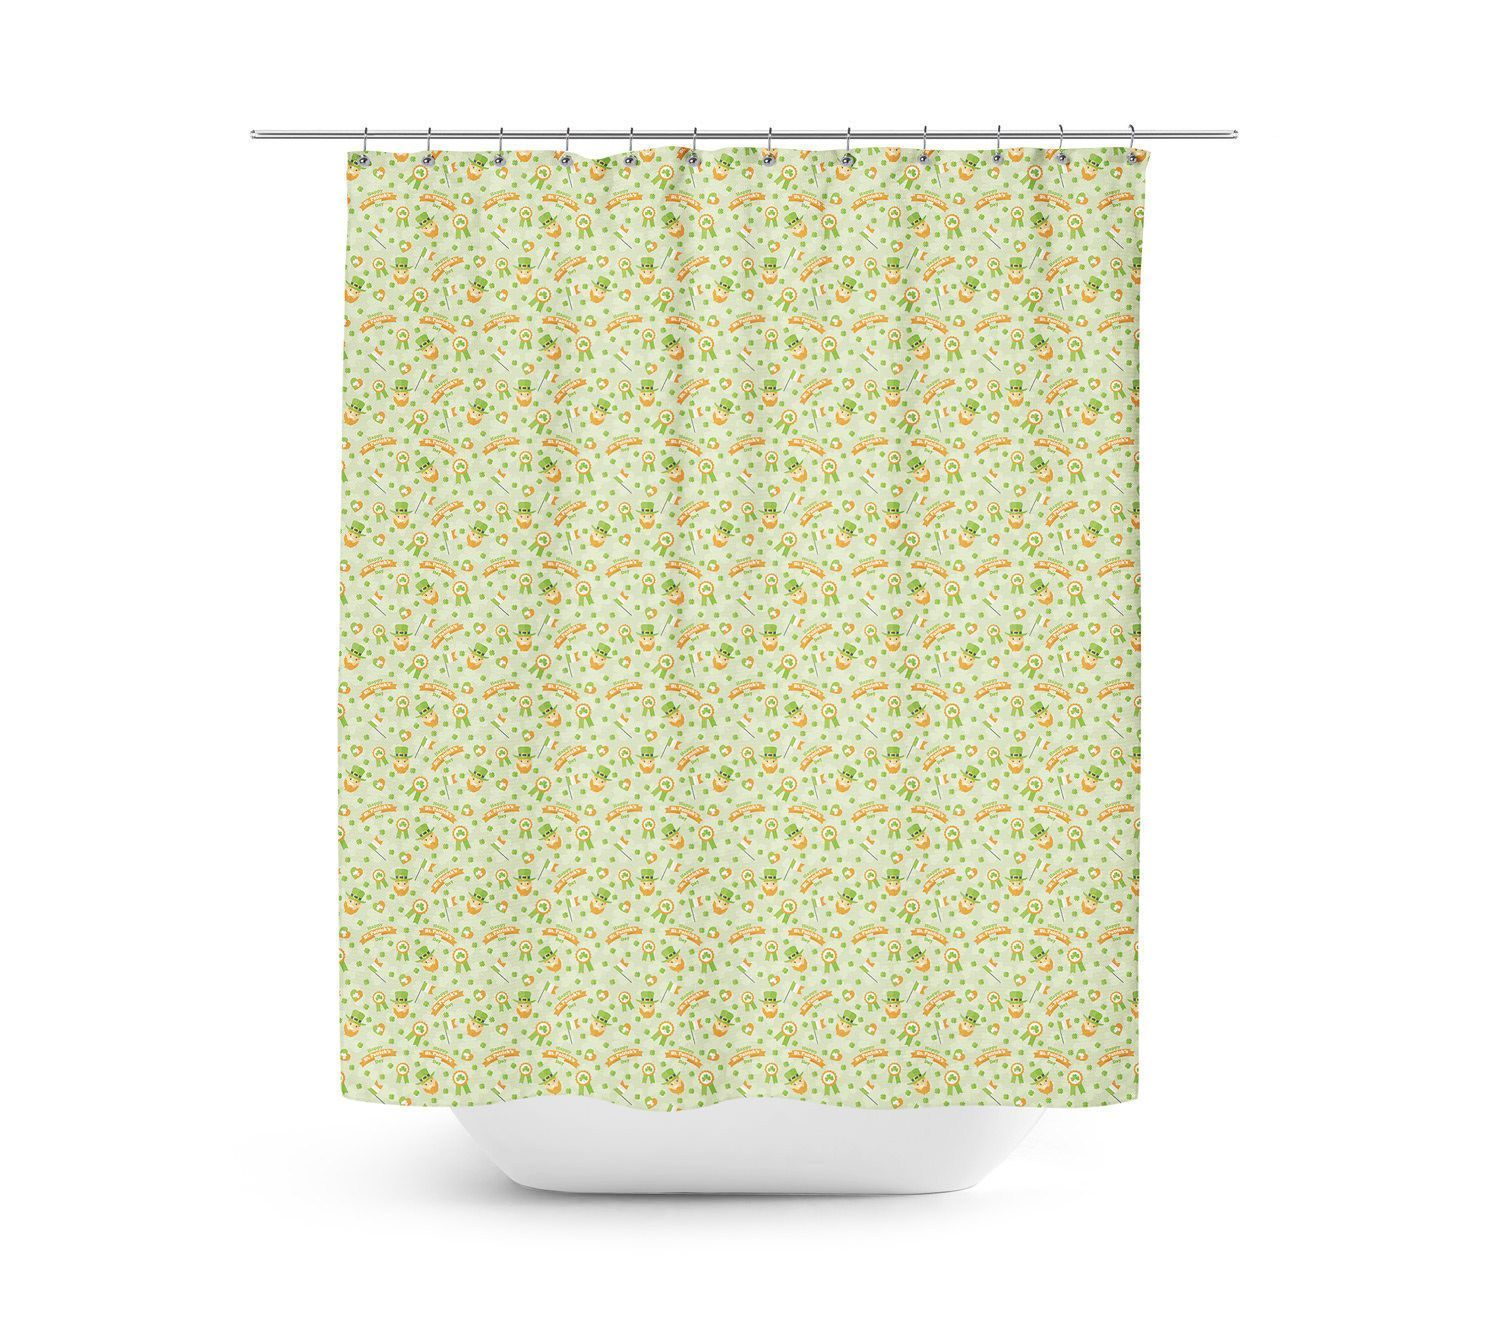 St Patricks Day Shower Curtain Unique In 4 Sizes For Any